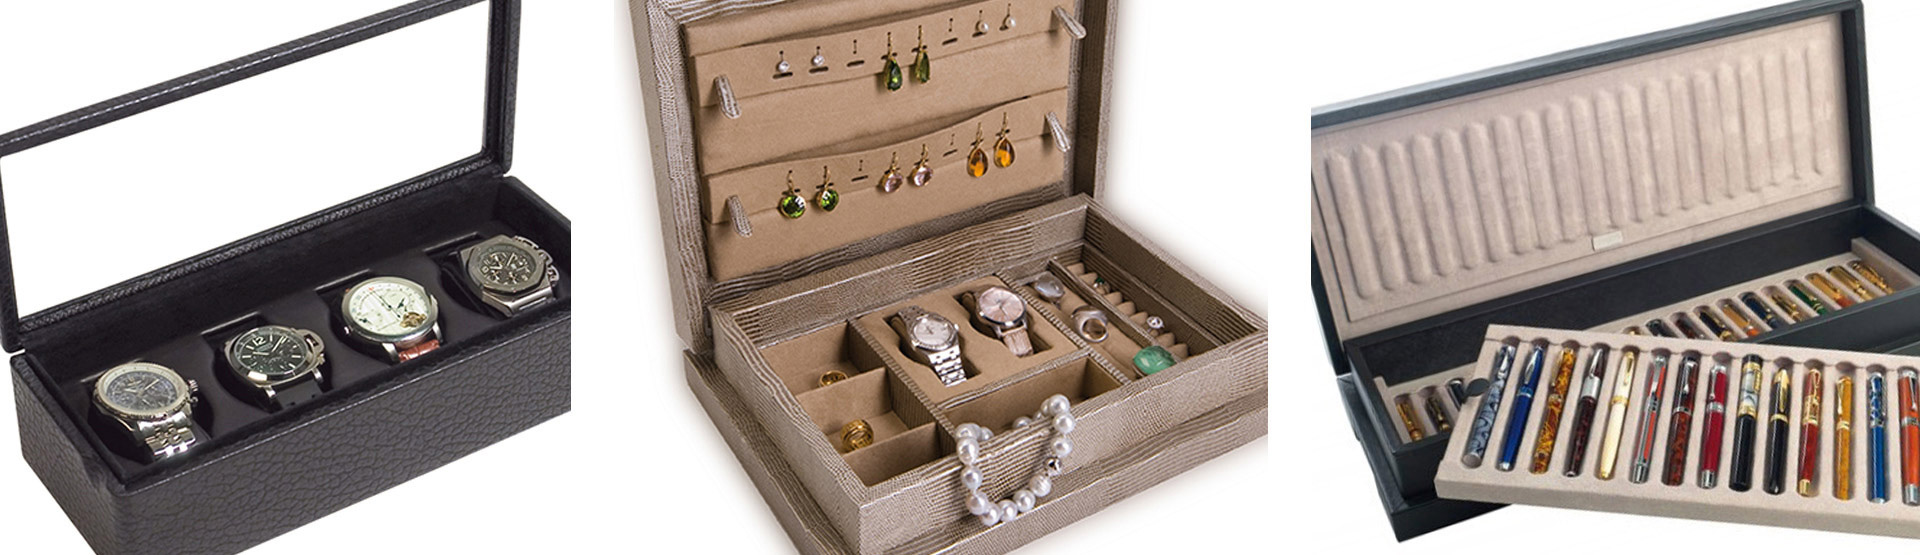 Watches and jewellery cases